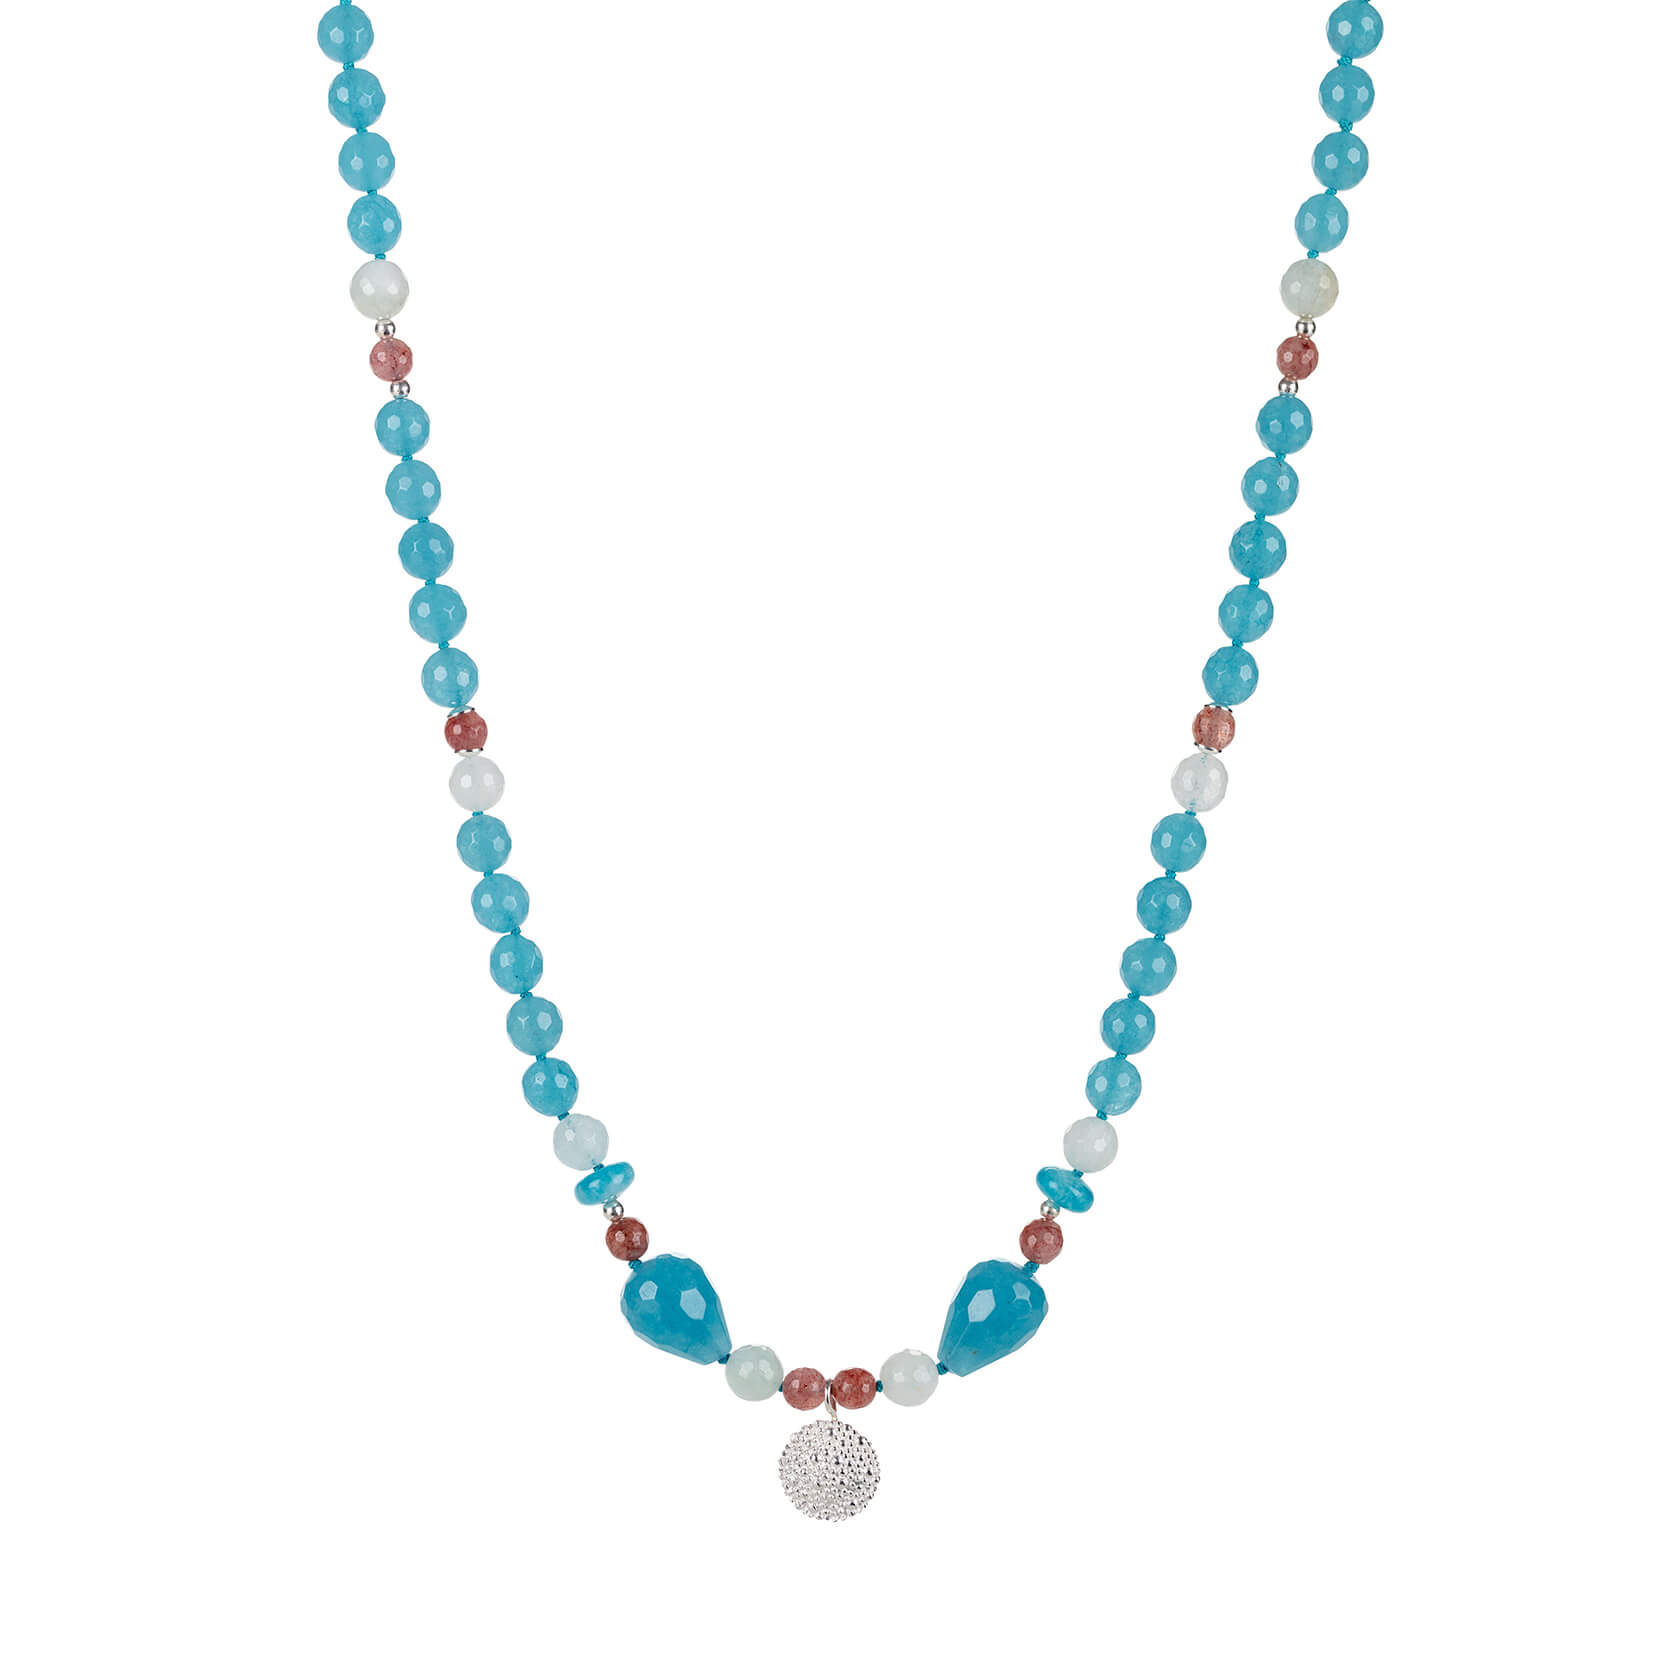 Angelite short necklace